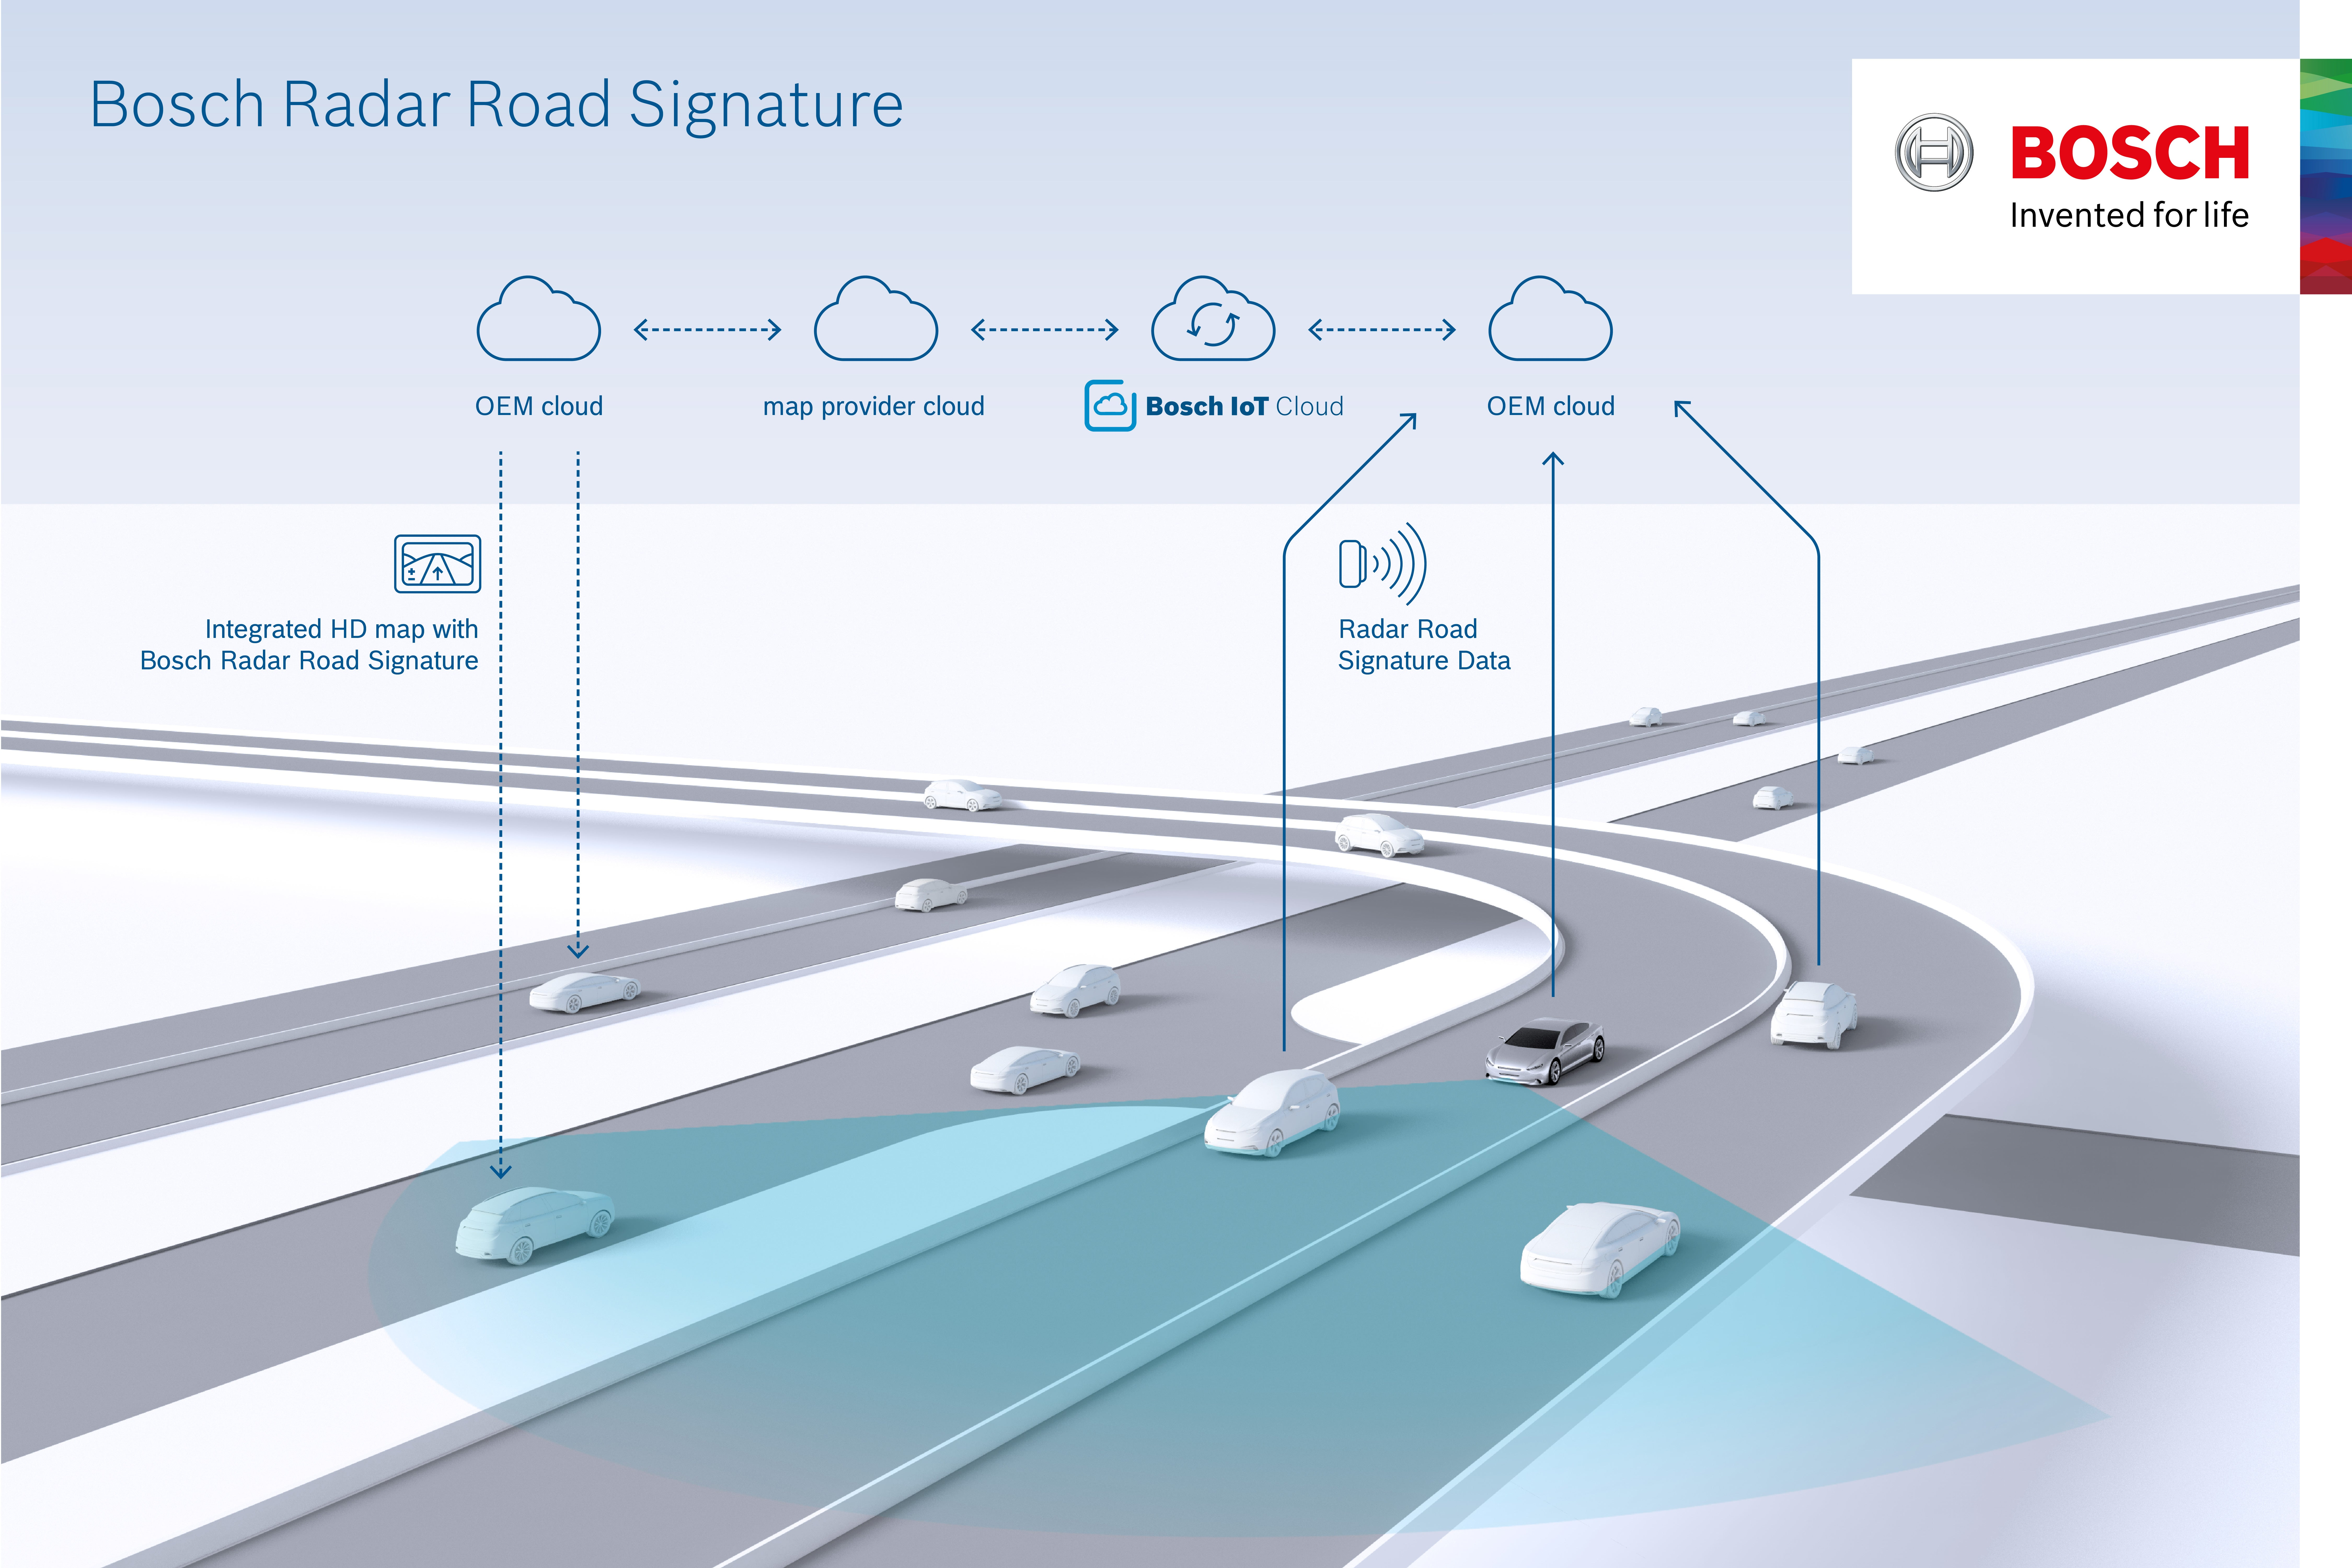 Bosch plans to use radar sensors in millions of cars to make better maps